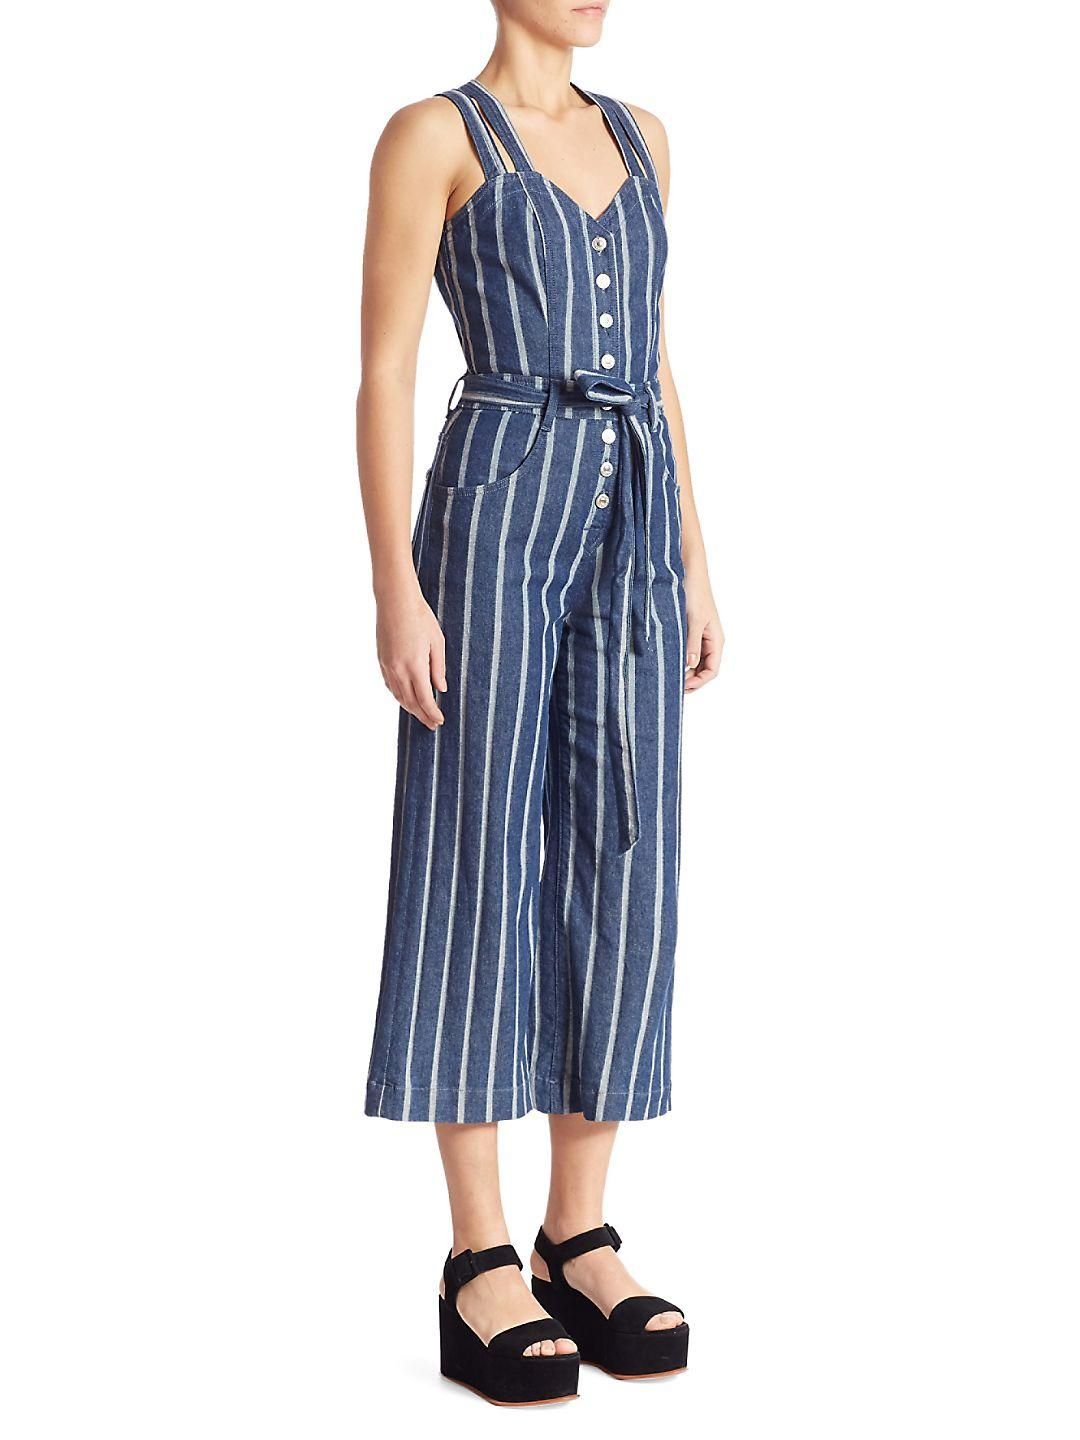 560b1236582 Lyst - 7 For All Mankind Striped Denim Jumpsuit in Blue